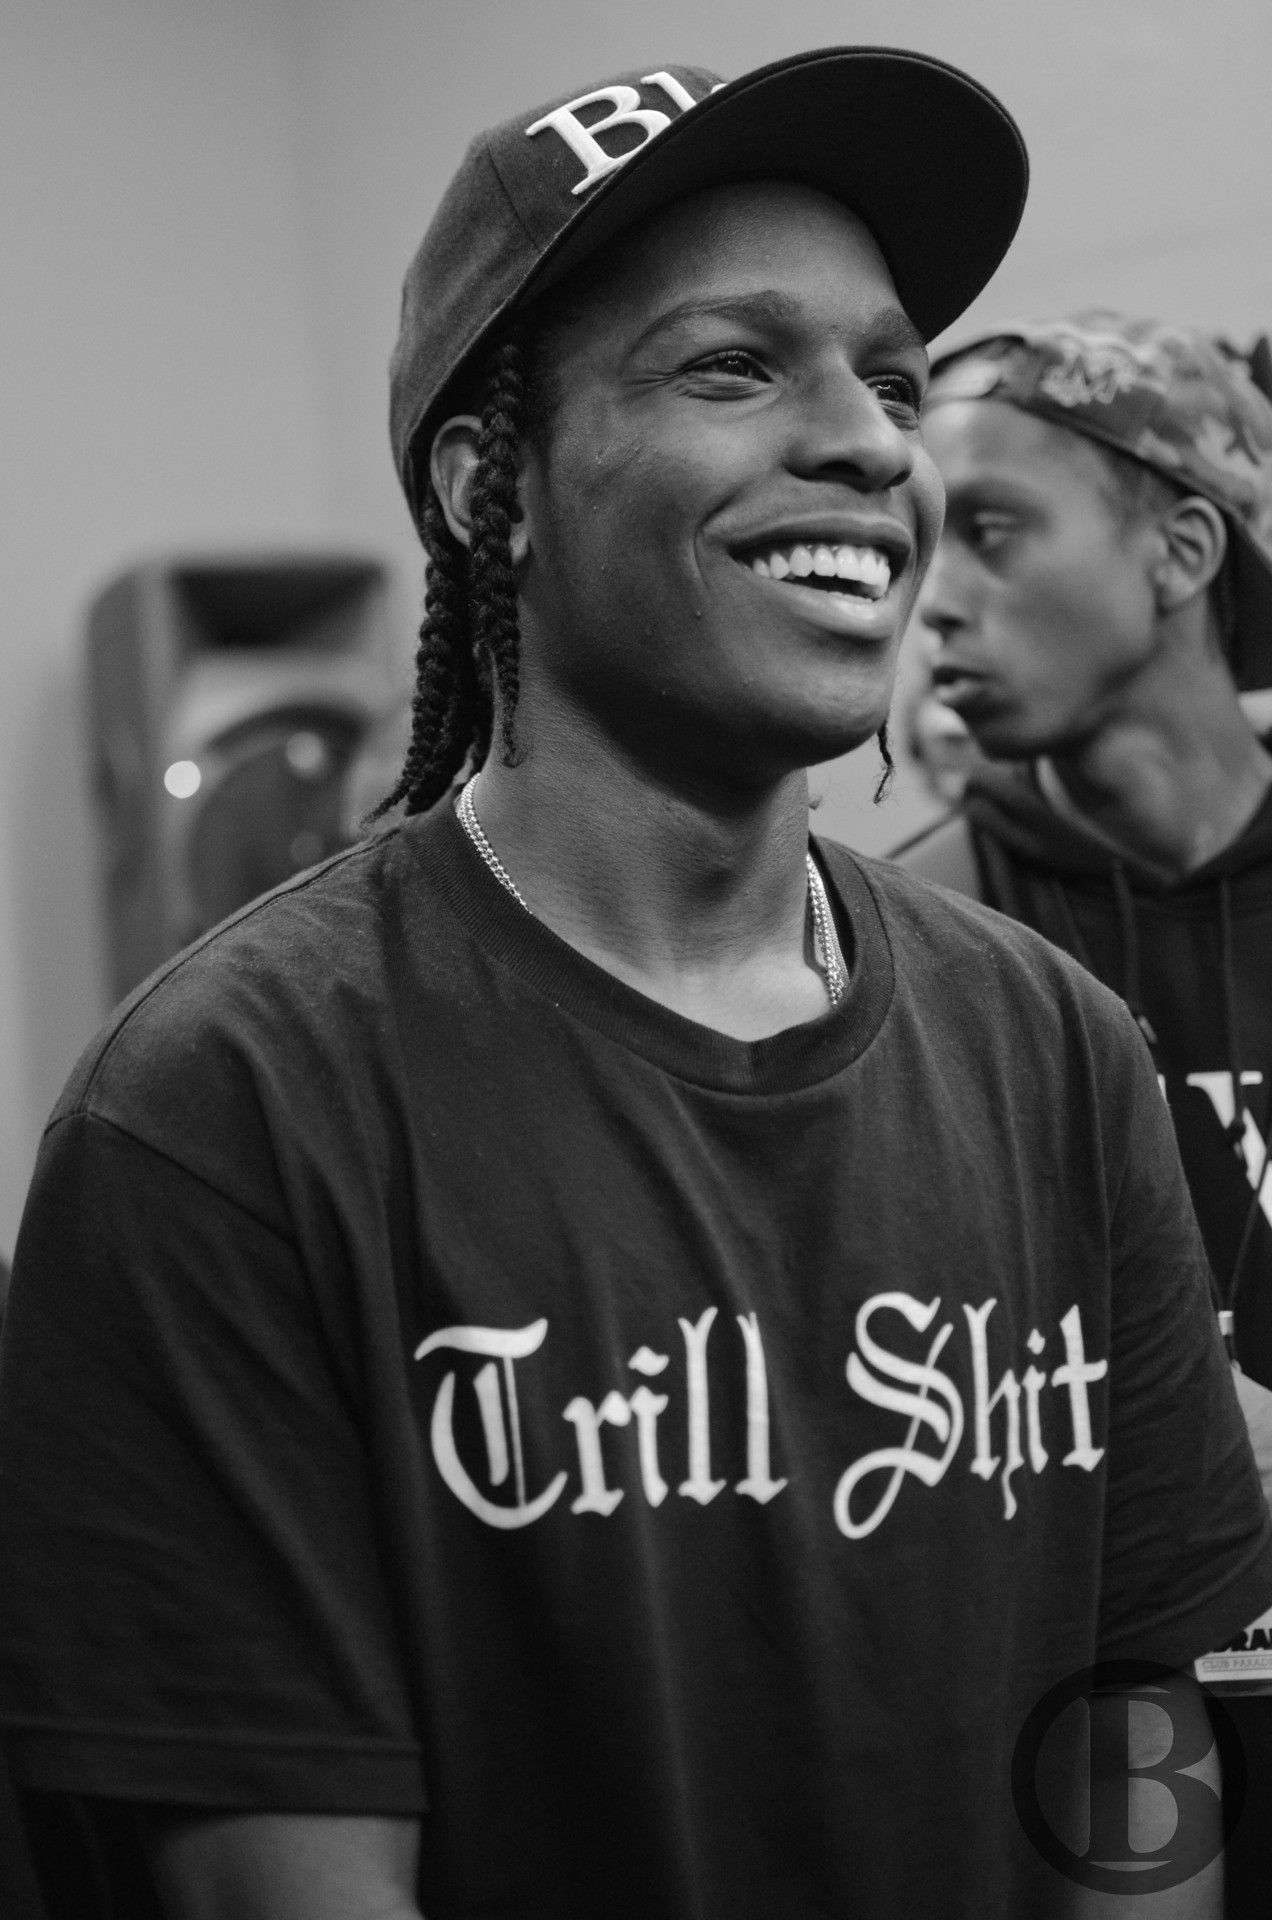 1272x1920 Asap Rocky Wallpaper Iphone 19+ - dzbc.org